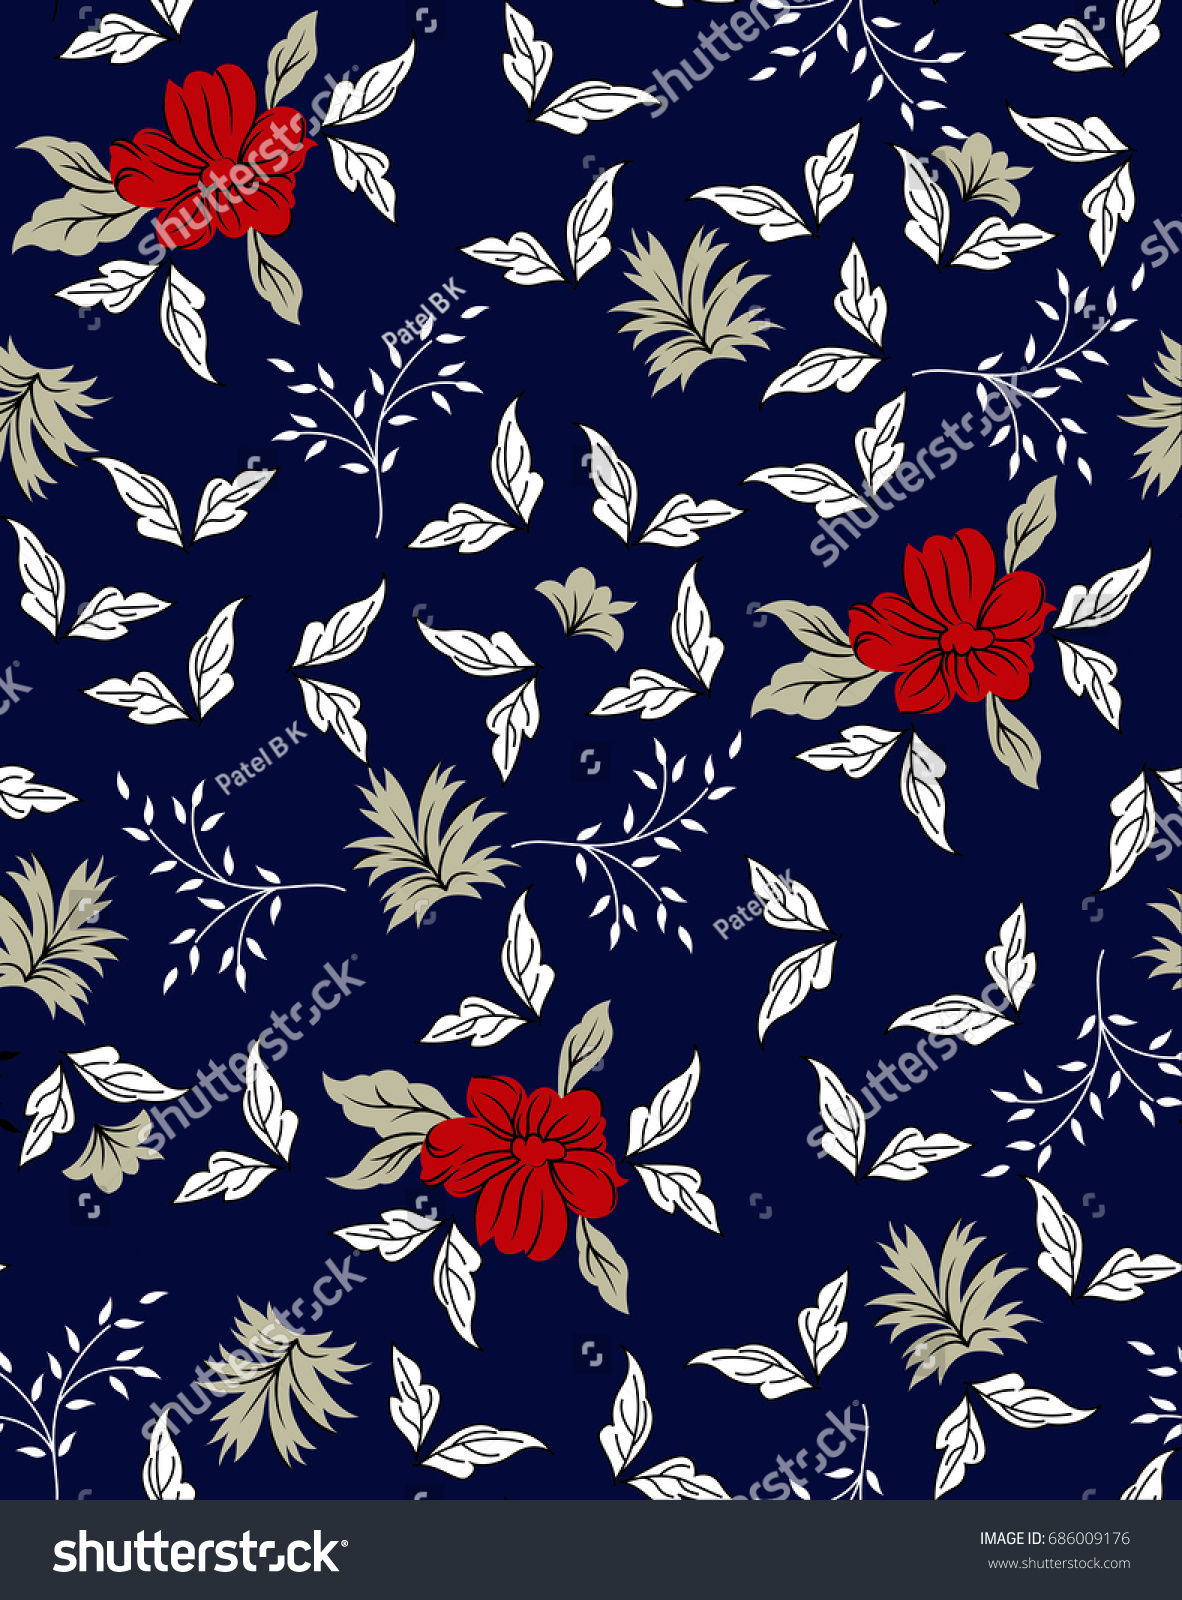 Navy Red Flower Images Stock Photos Vectors Shutterstock